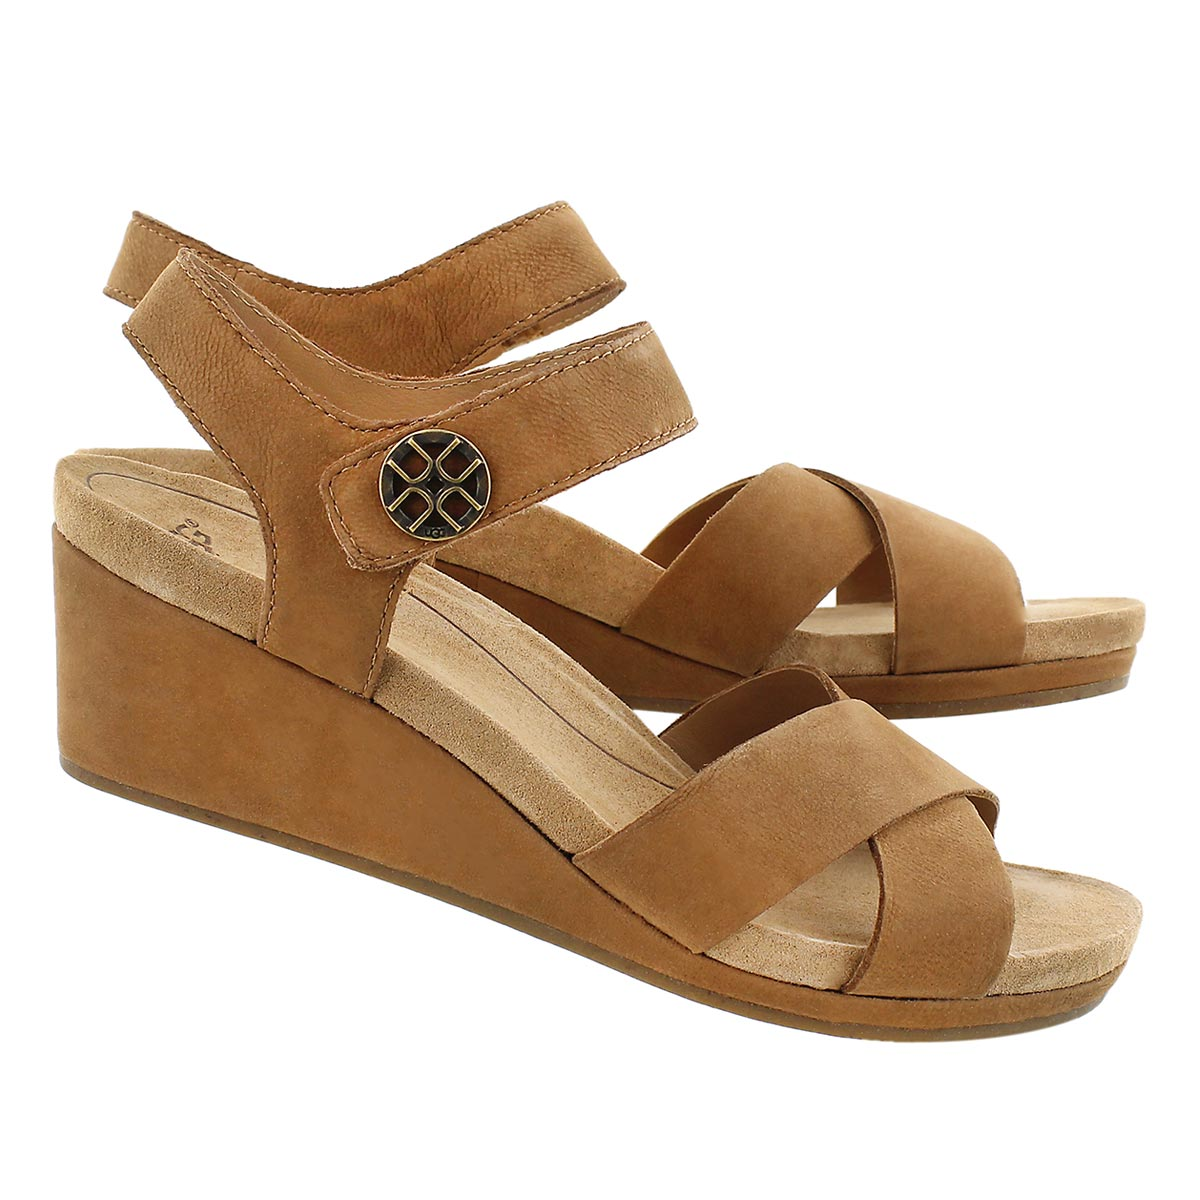 Lds Veva chestnut wedge sandal